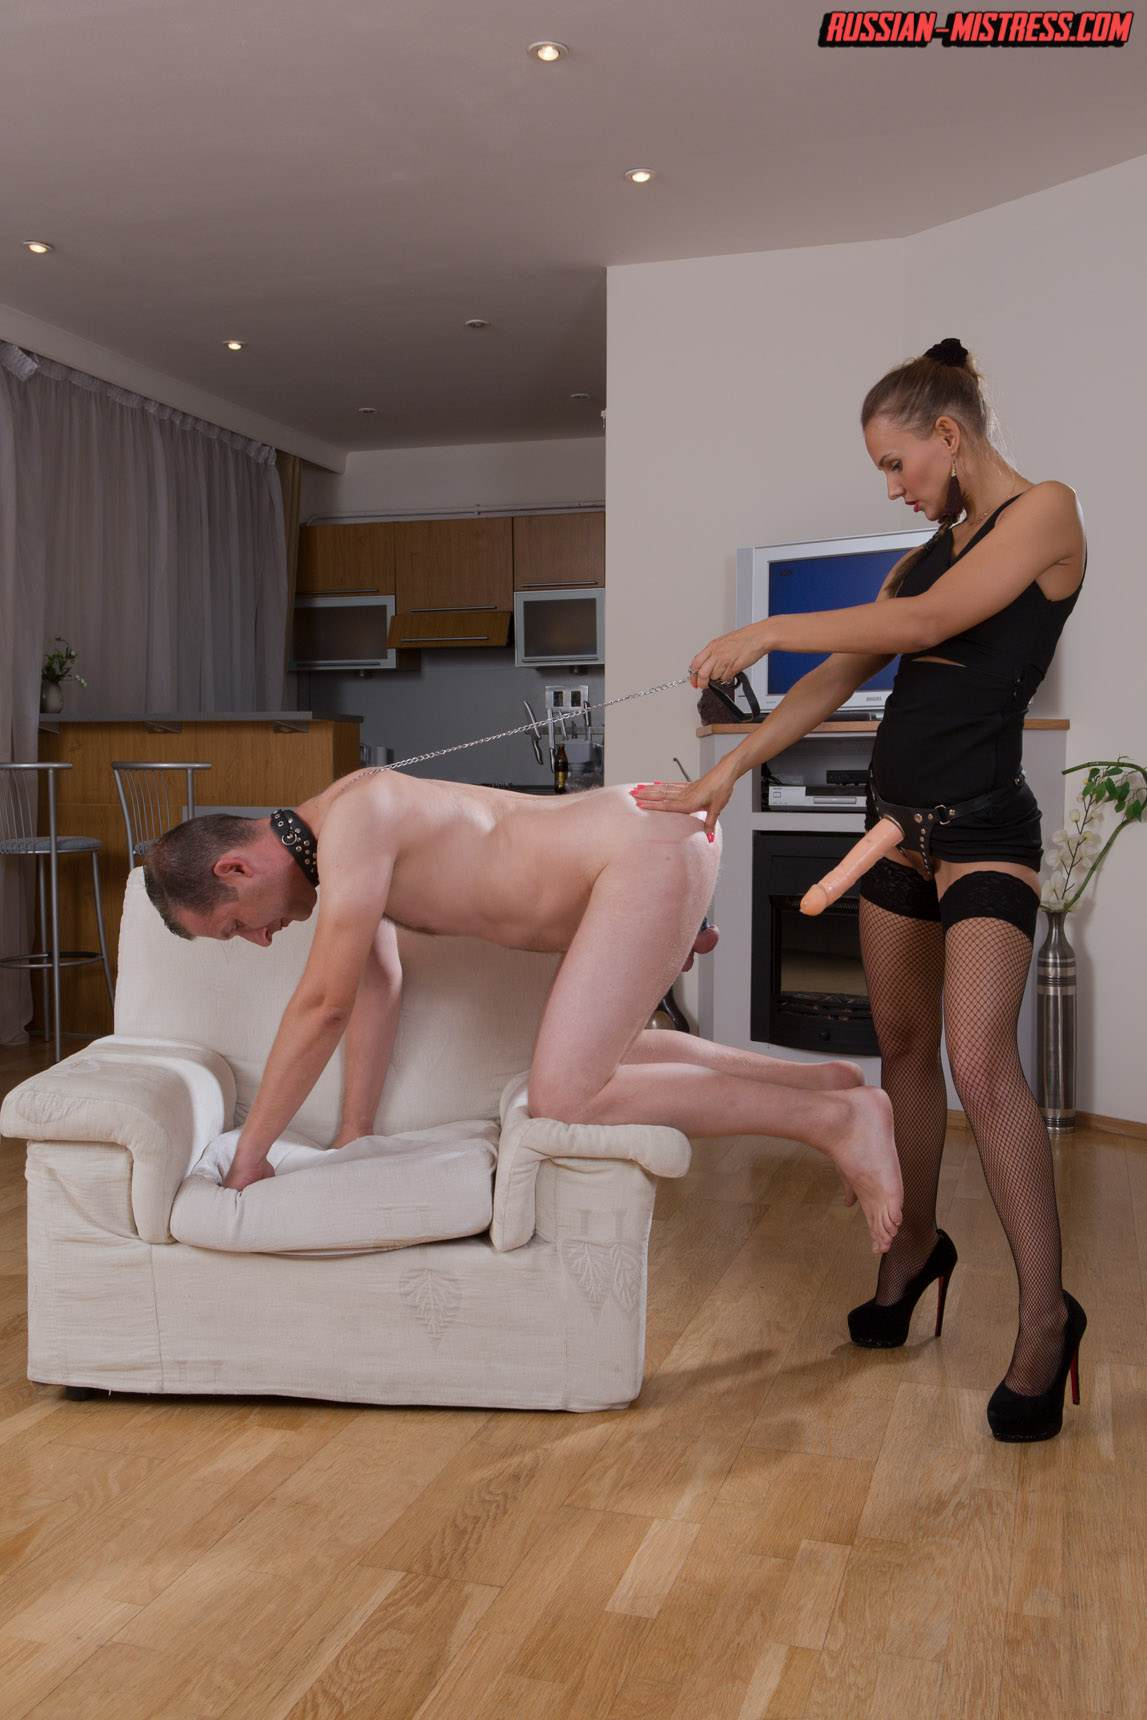 Picture #13 of Mistress is keeping slave motivated for legs worship with harsh whip lashes and then rewards him with deep anal strap-on penetration